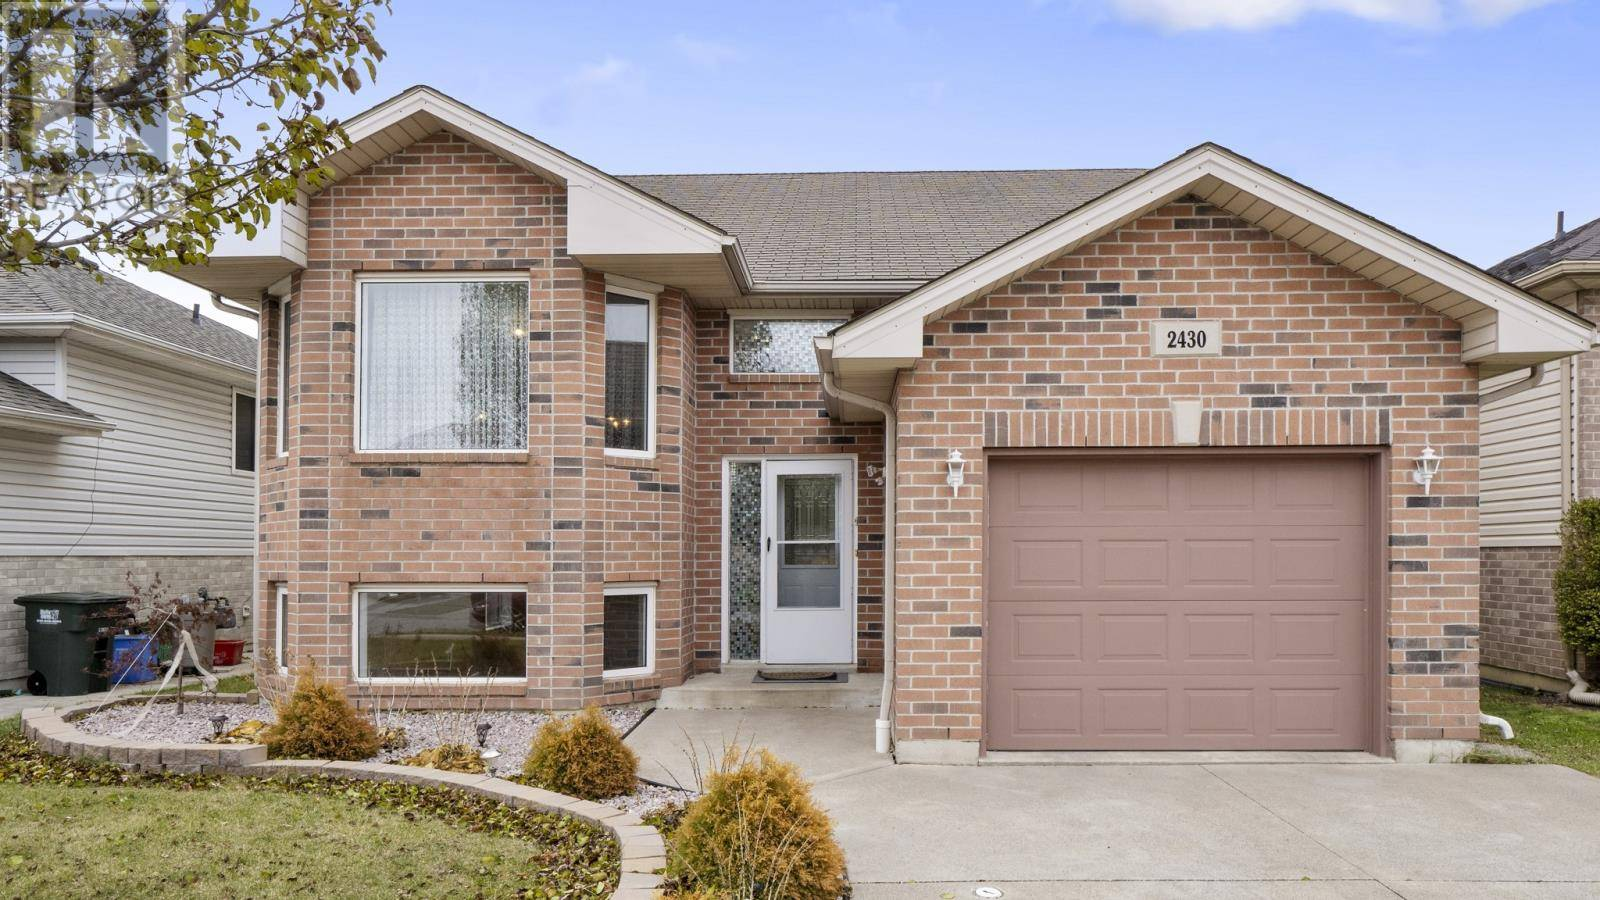 House for sale at 2430 Duneshill  Windsor Ontario - MLS: 19029058